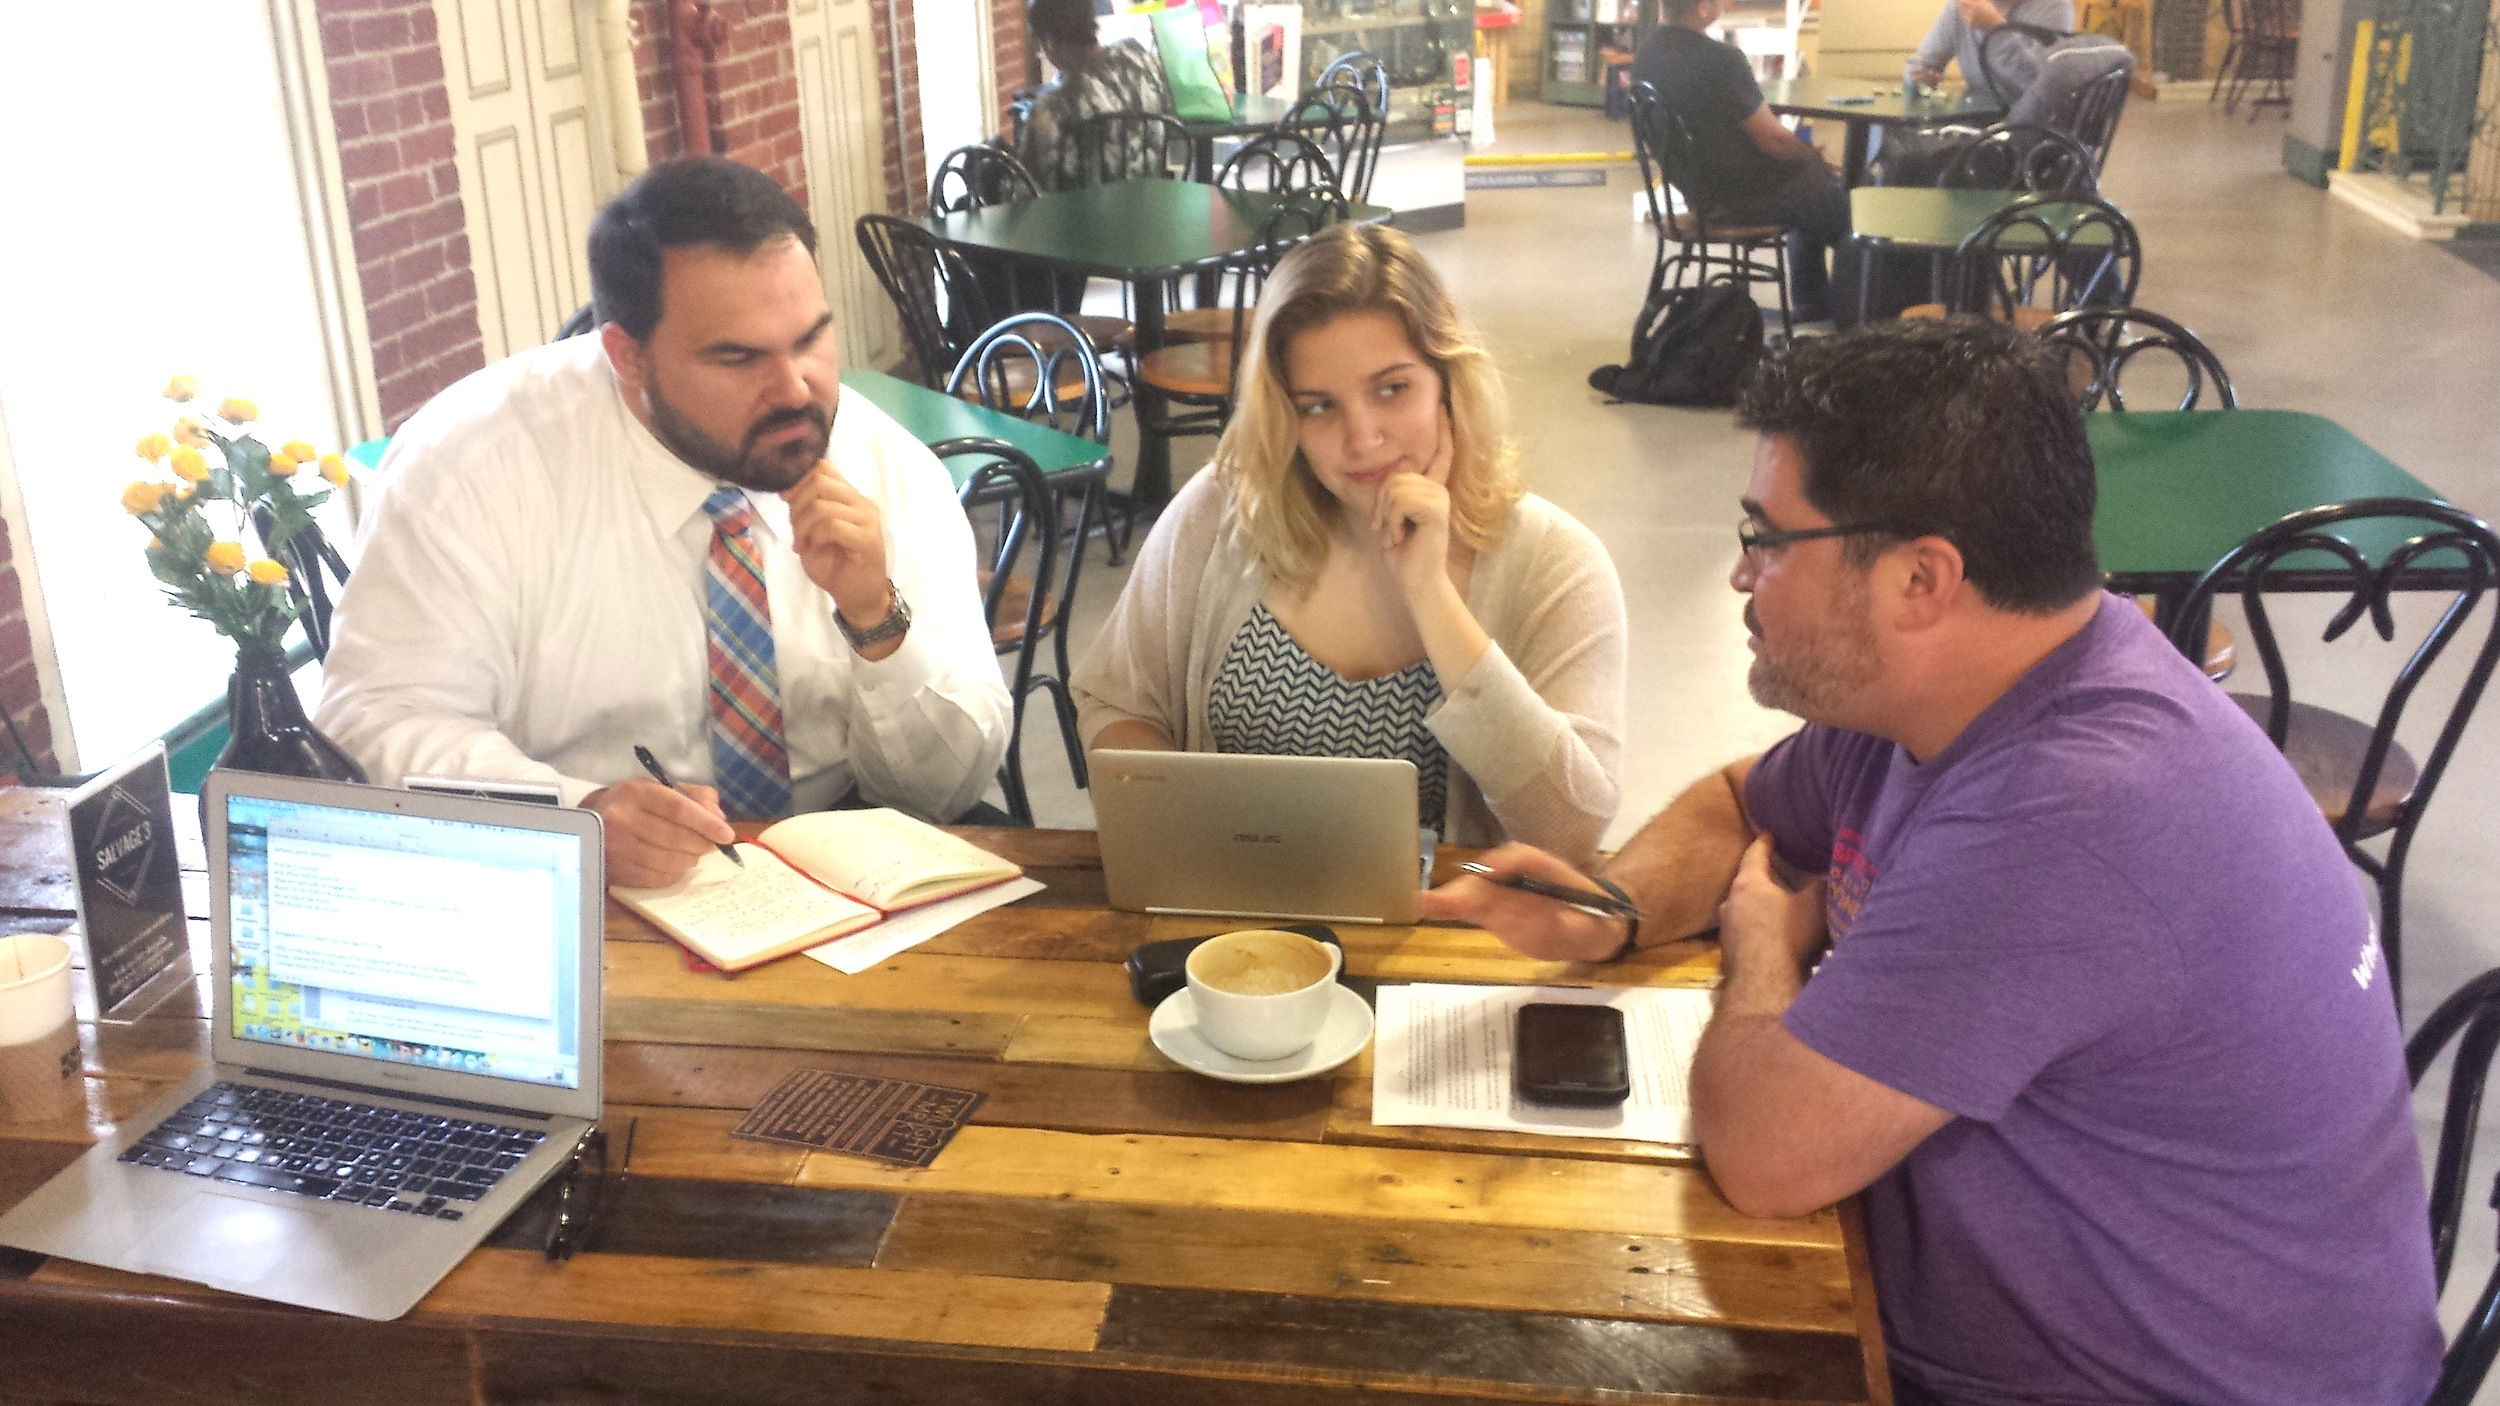 On Aug. 15, City Councilors Jared Evans (left) and Zach Adamson (right) met with North Central High School Sophomore Cora Gordon to discuss the Climate Recovery Resolution and its next steps.